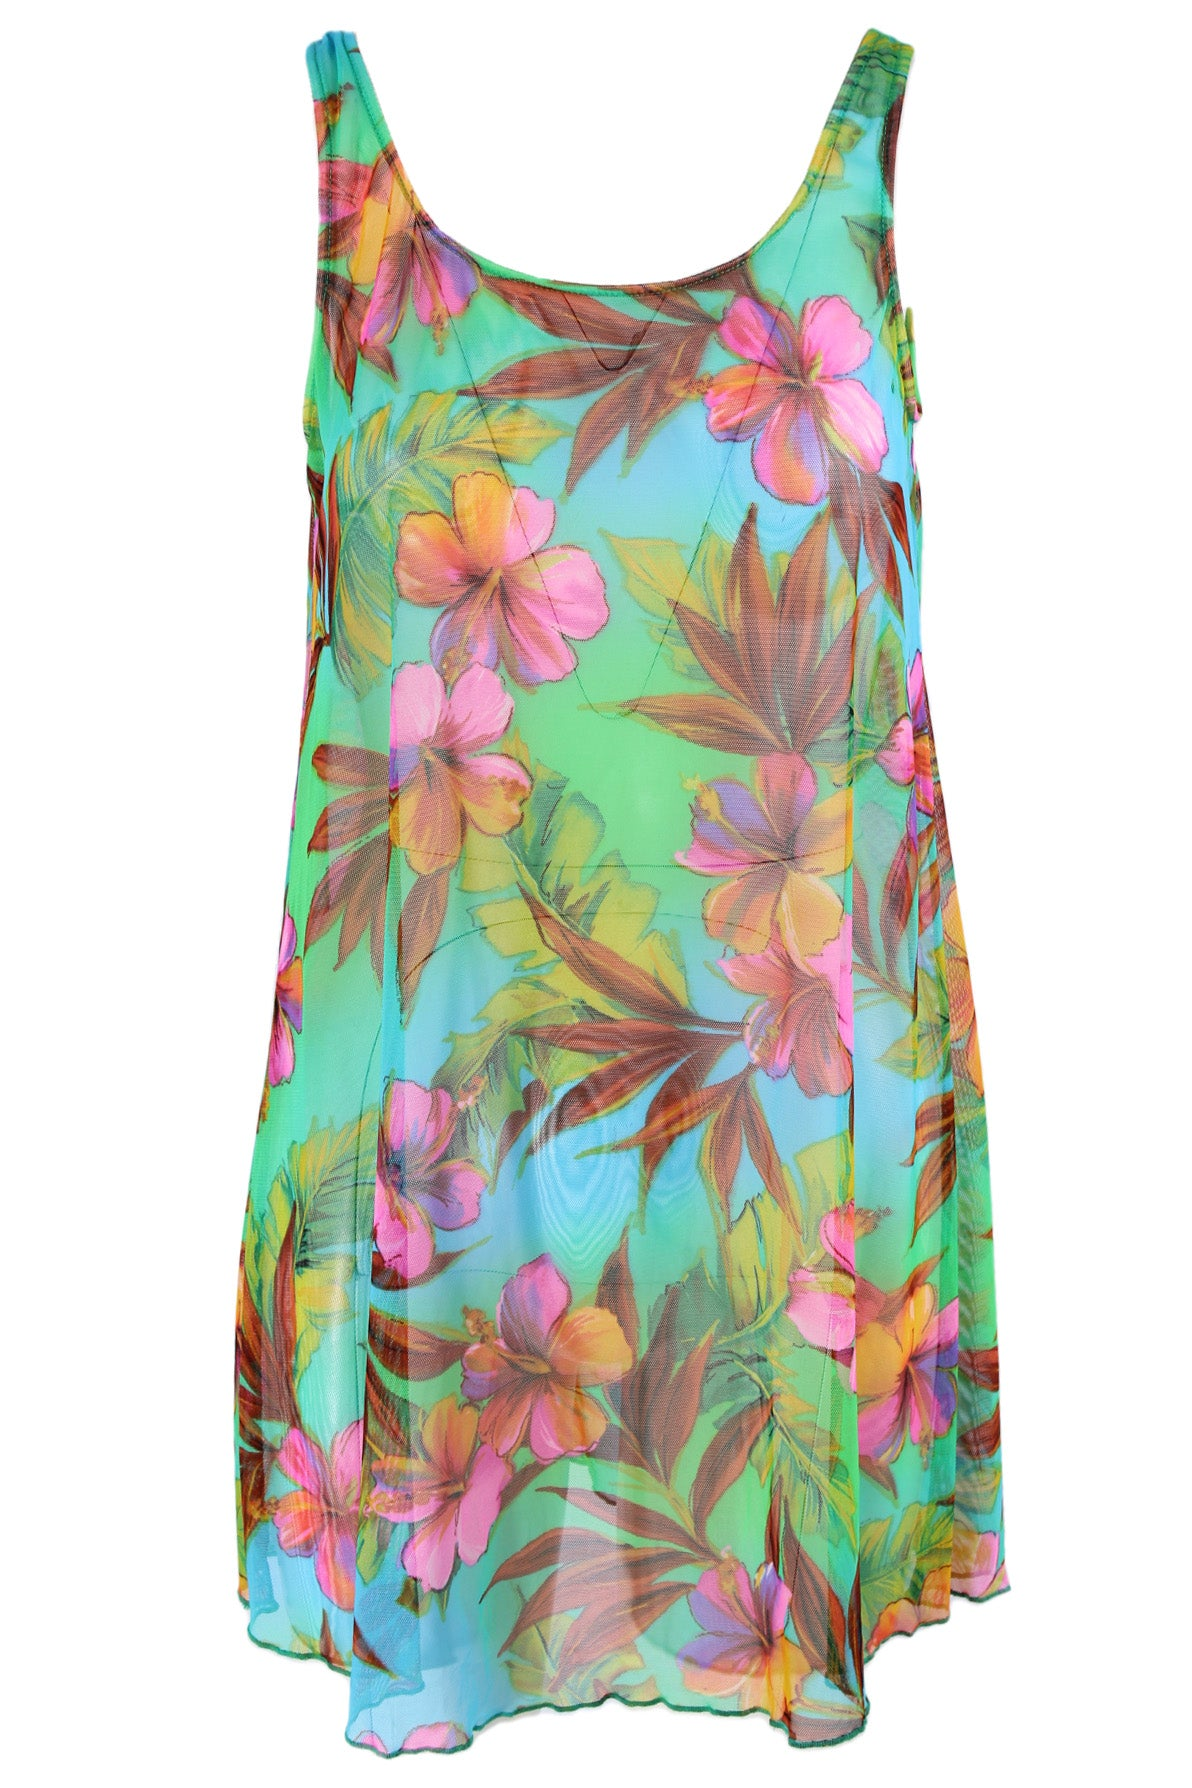 unlabeled multicolored floral dress. features multicolor exterior with floral print throughout, round neckline and relaxed fit.